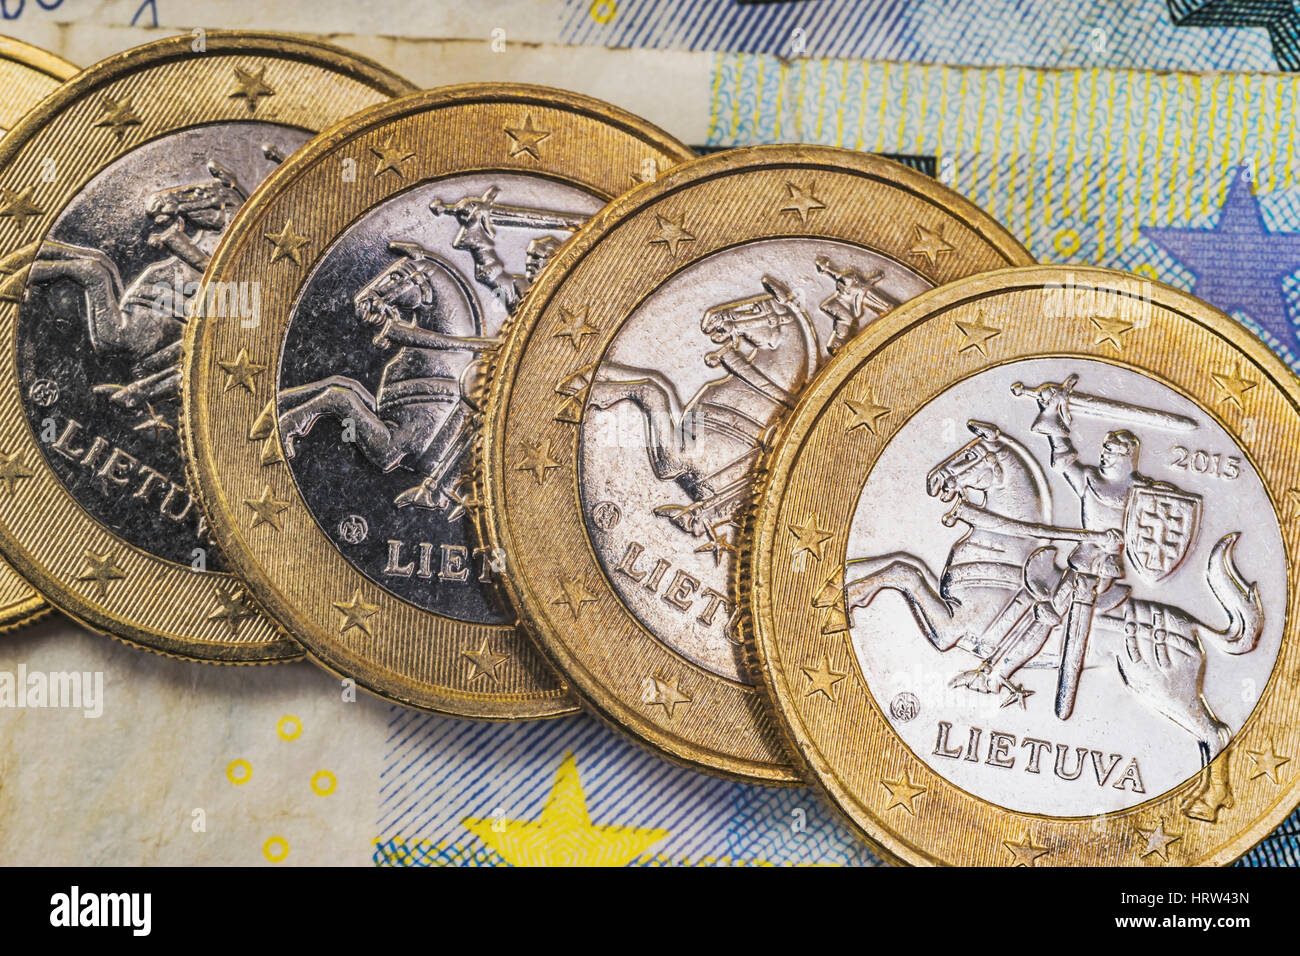 four 1 euro coins from Lithuania on euro banknotes - Stock Image